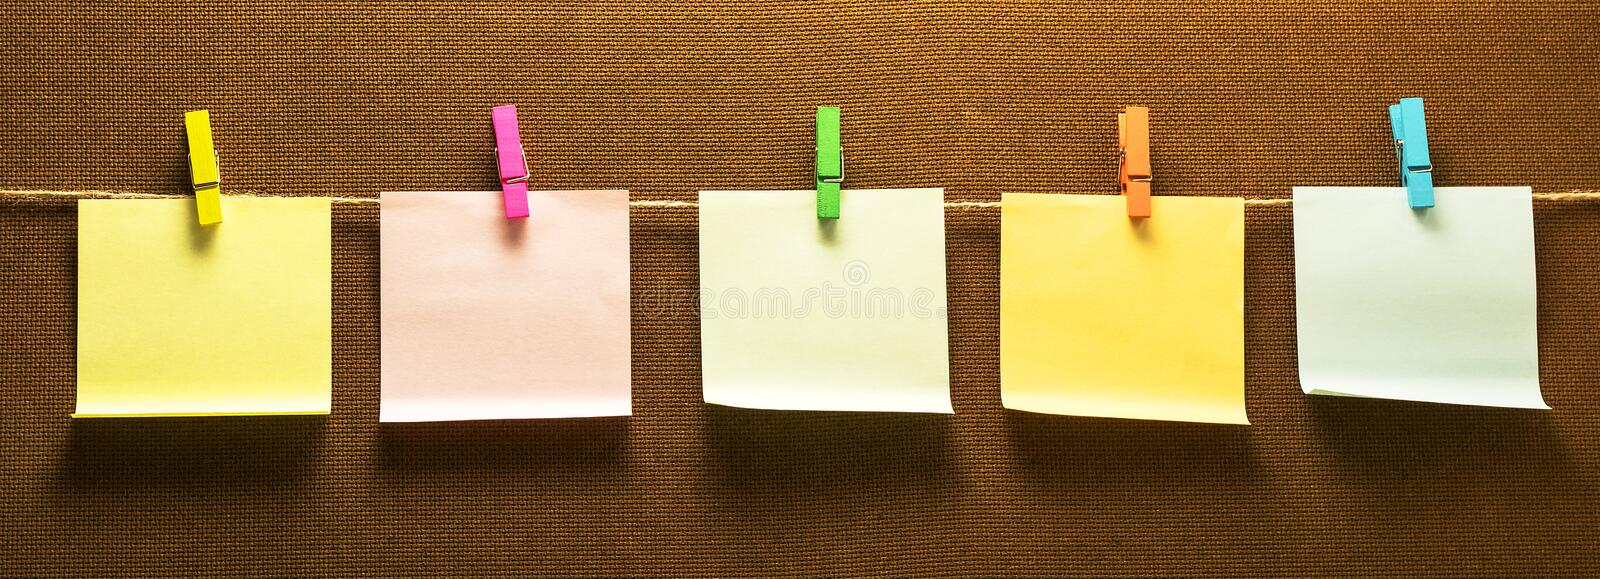 Clothes line note paper hanging horizontal royalty free stock images